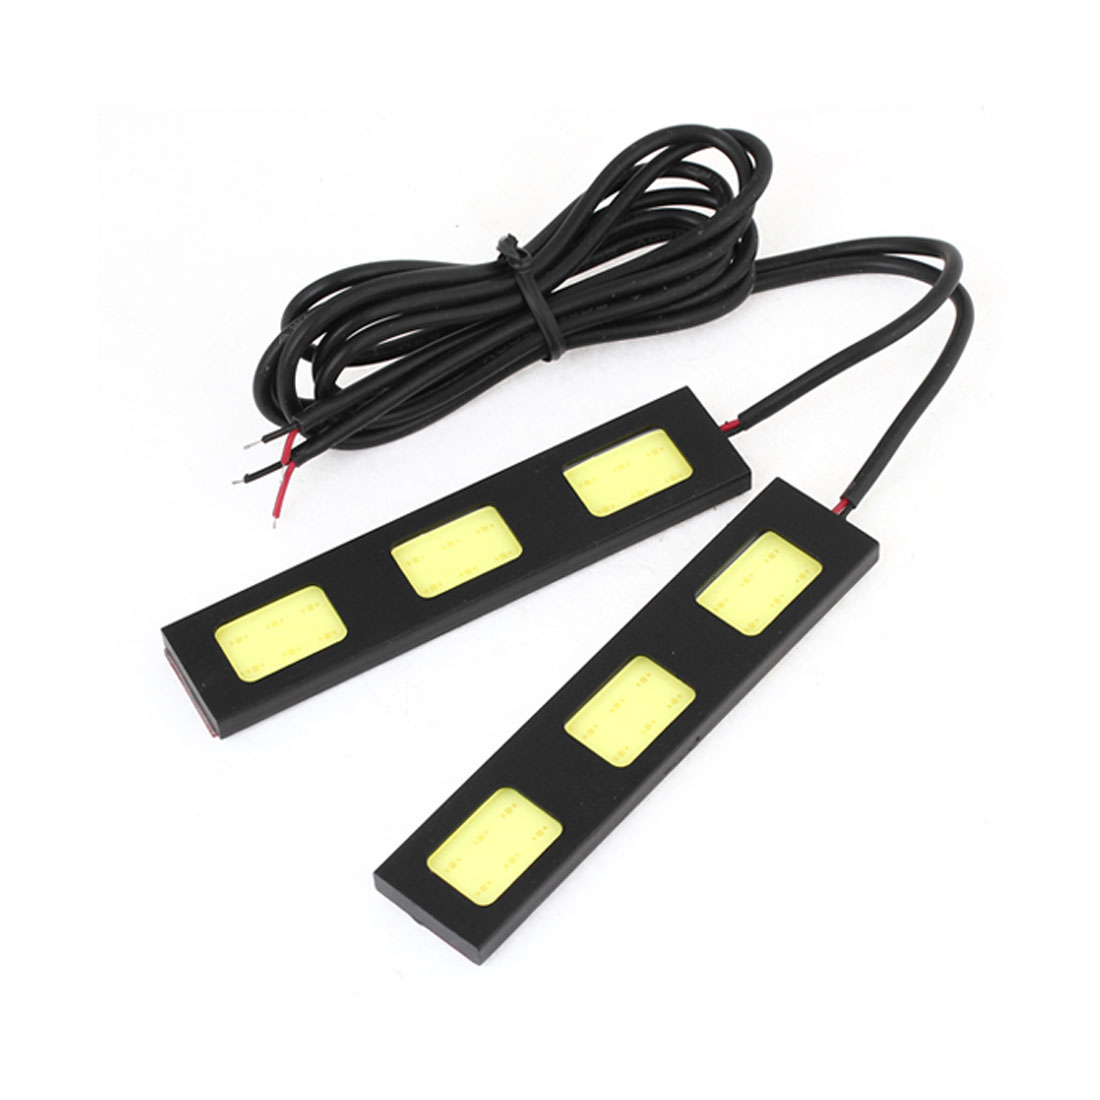 Unique Bargains DC 12V 6W 3 COB White  Car Driving Daytime Running Light Lamp 92mm 2 Pcs